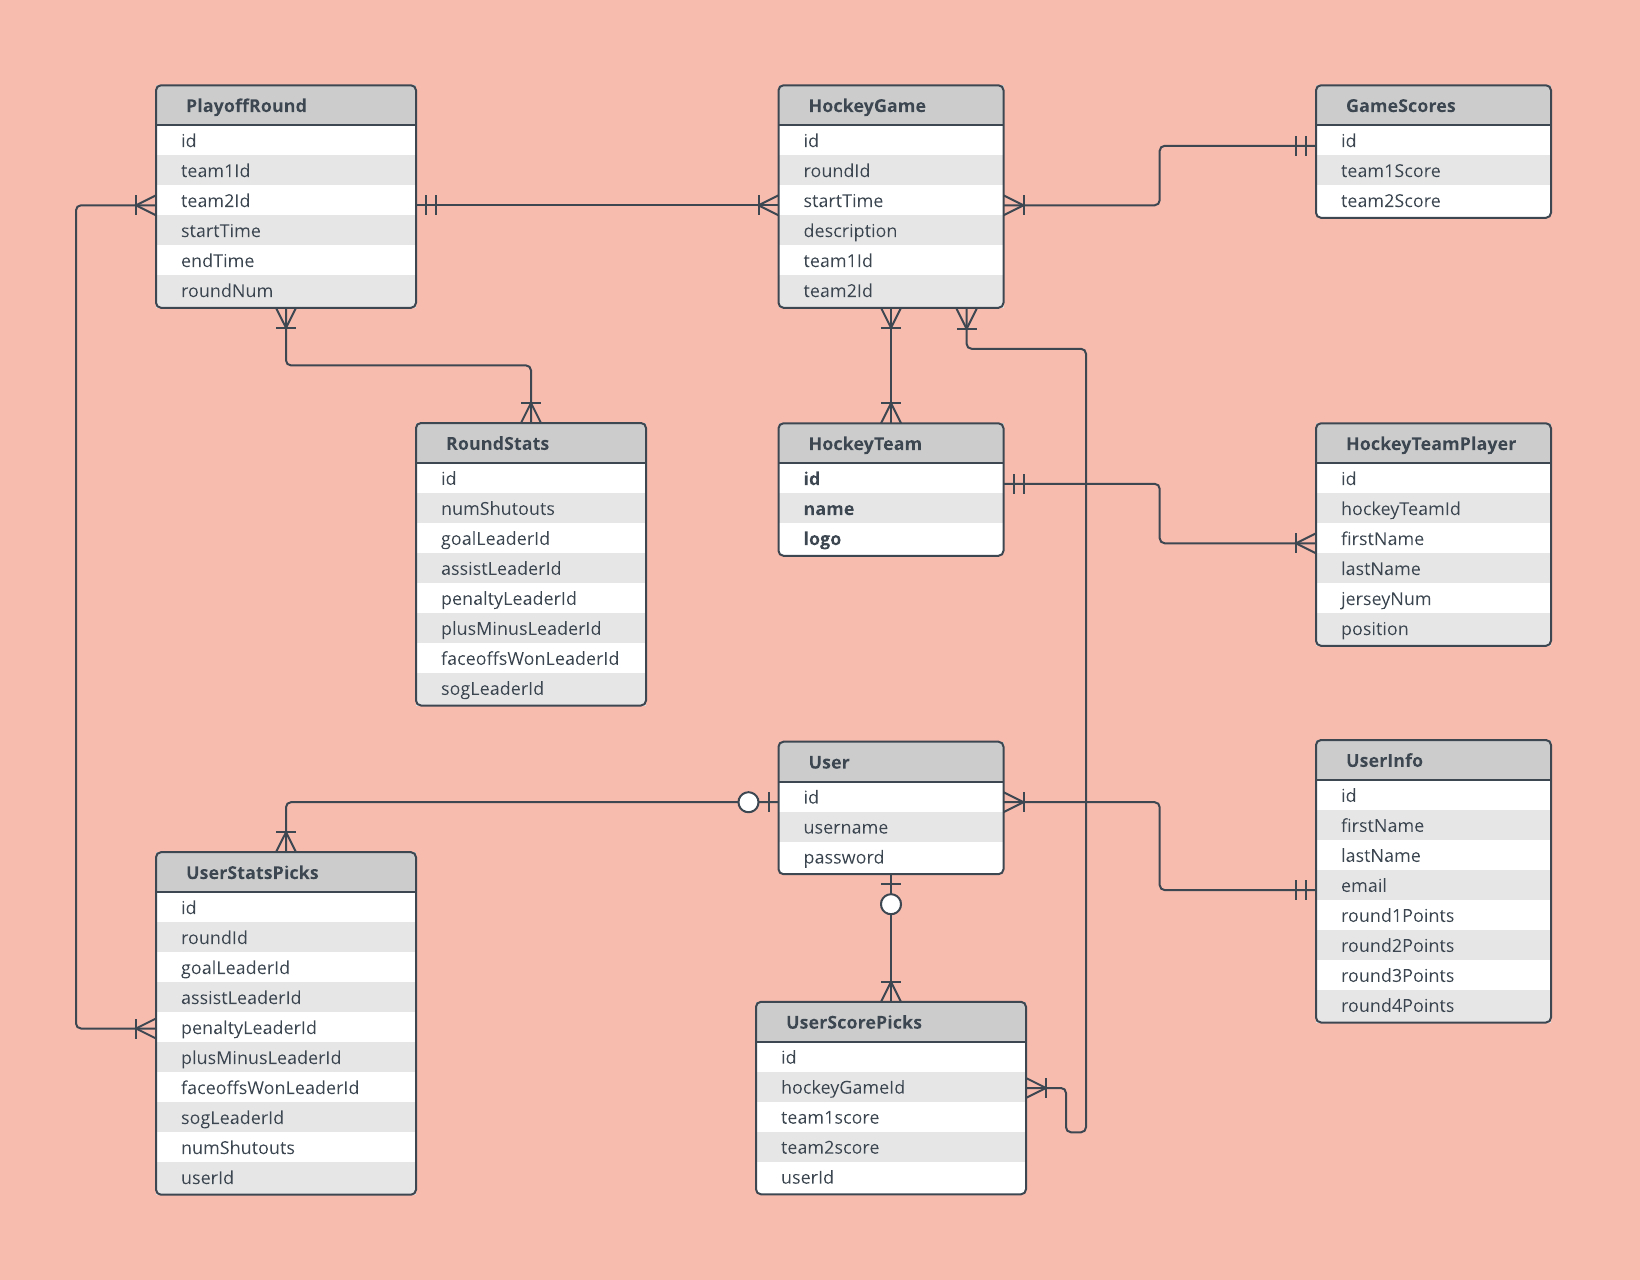 Er Diagram Examples And Templates | Lucidchart in Example Of Erd Diagram For Database